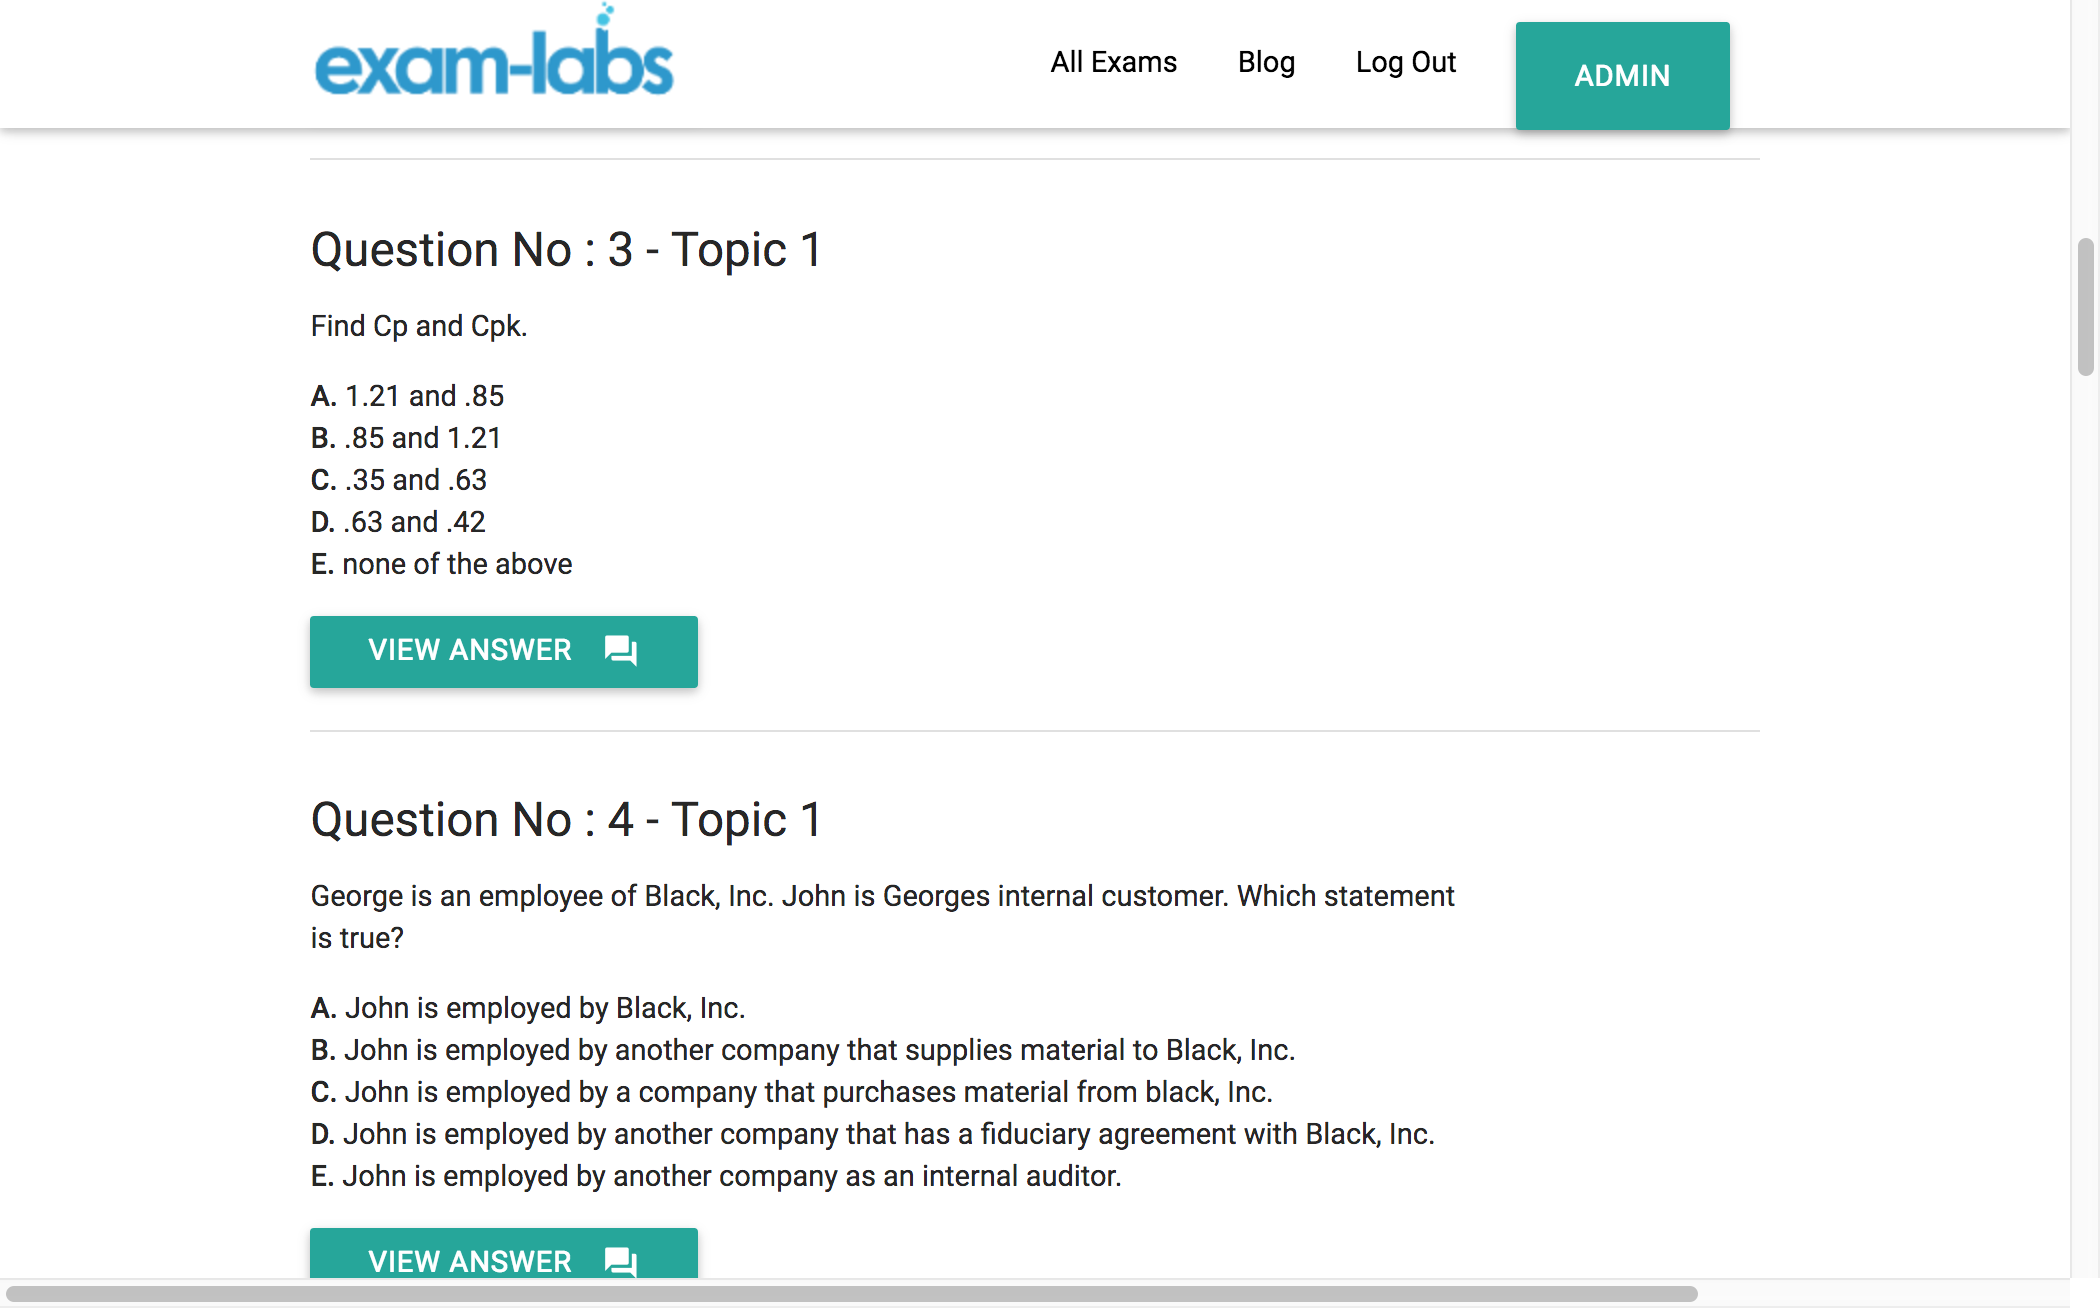 Clssbb gaqm practice exam questions 100 free exam labs gaqm clssbb certified lean six sigma black belt clssbb exam xflitez Choice Image